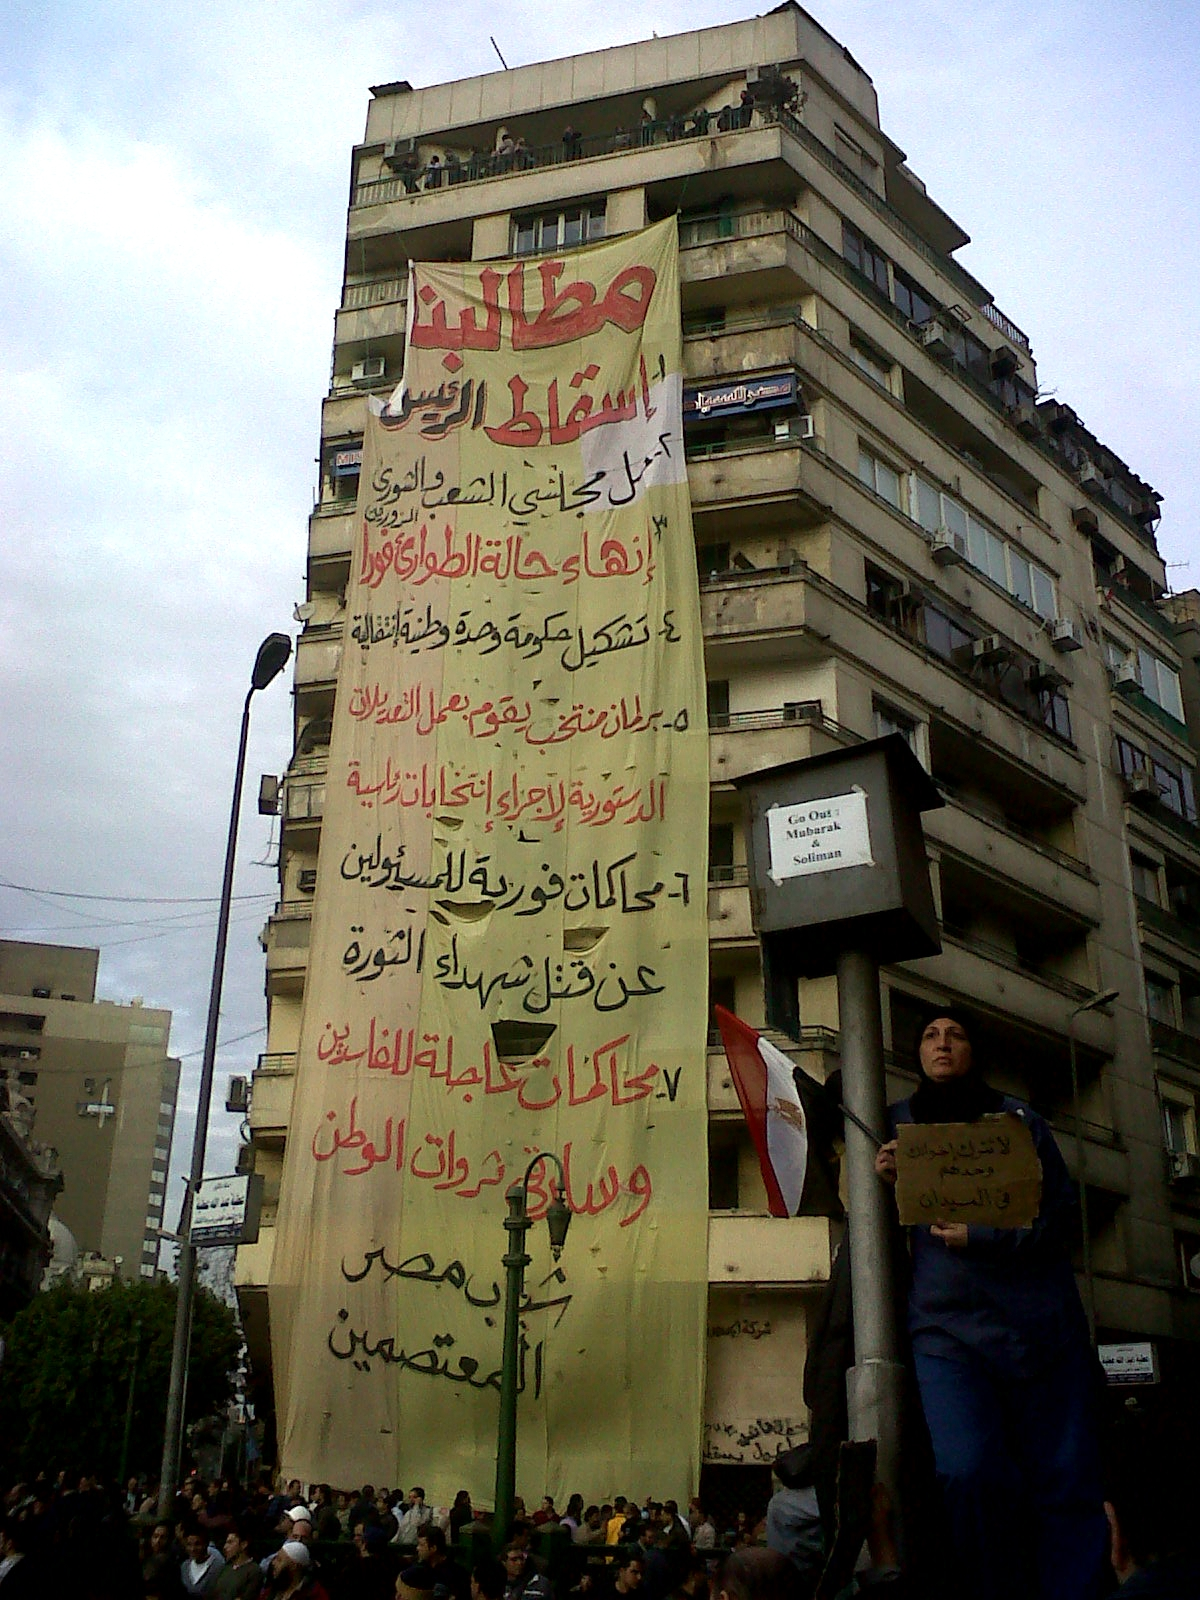 A sign with protesters' demands. Cairo, Egypt, February 2011. Photo Mona. CC BY 2.0.